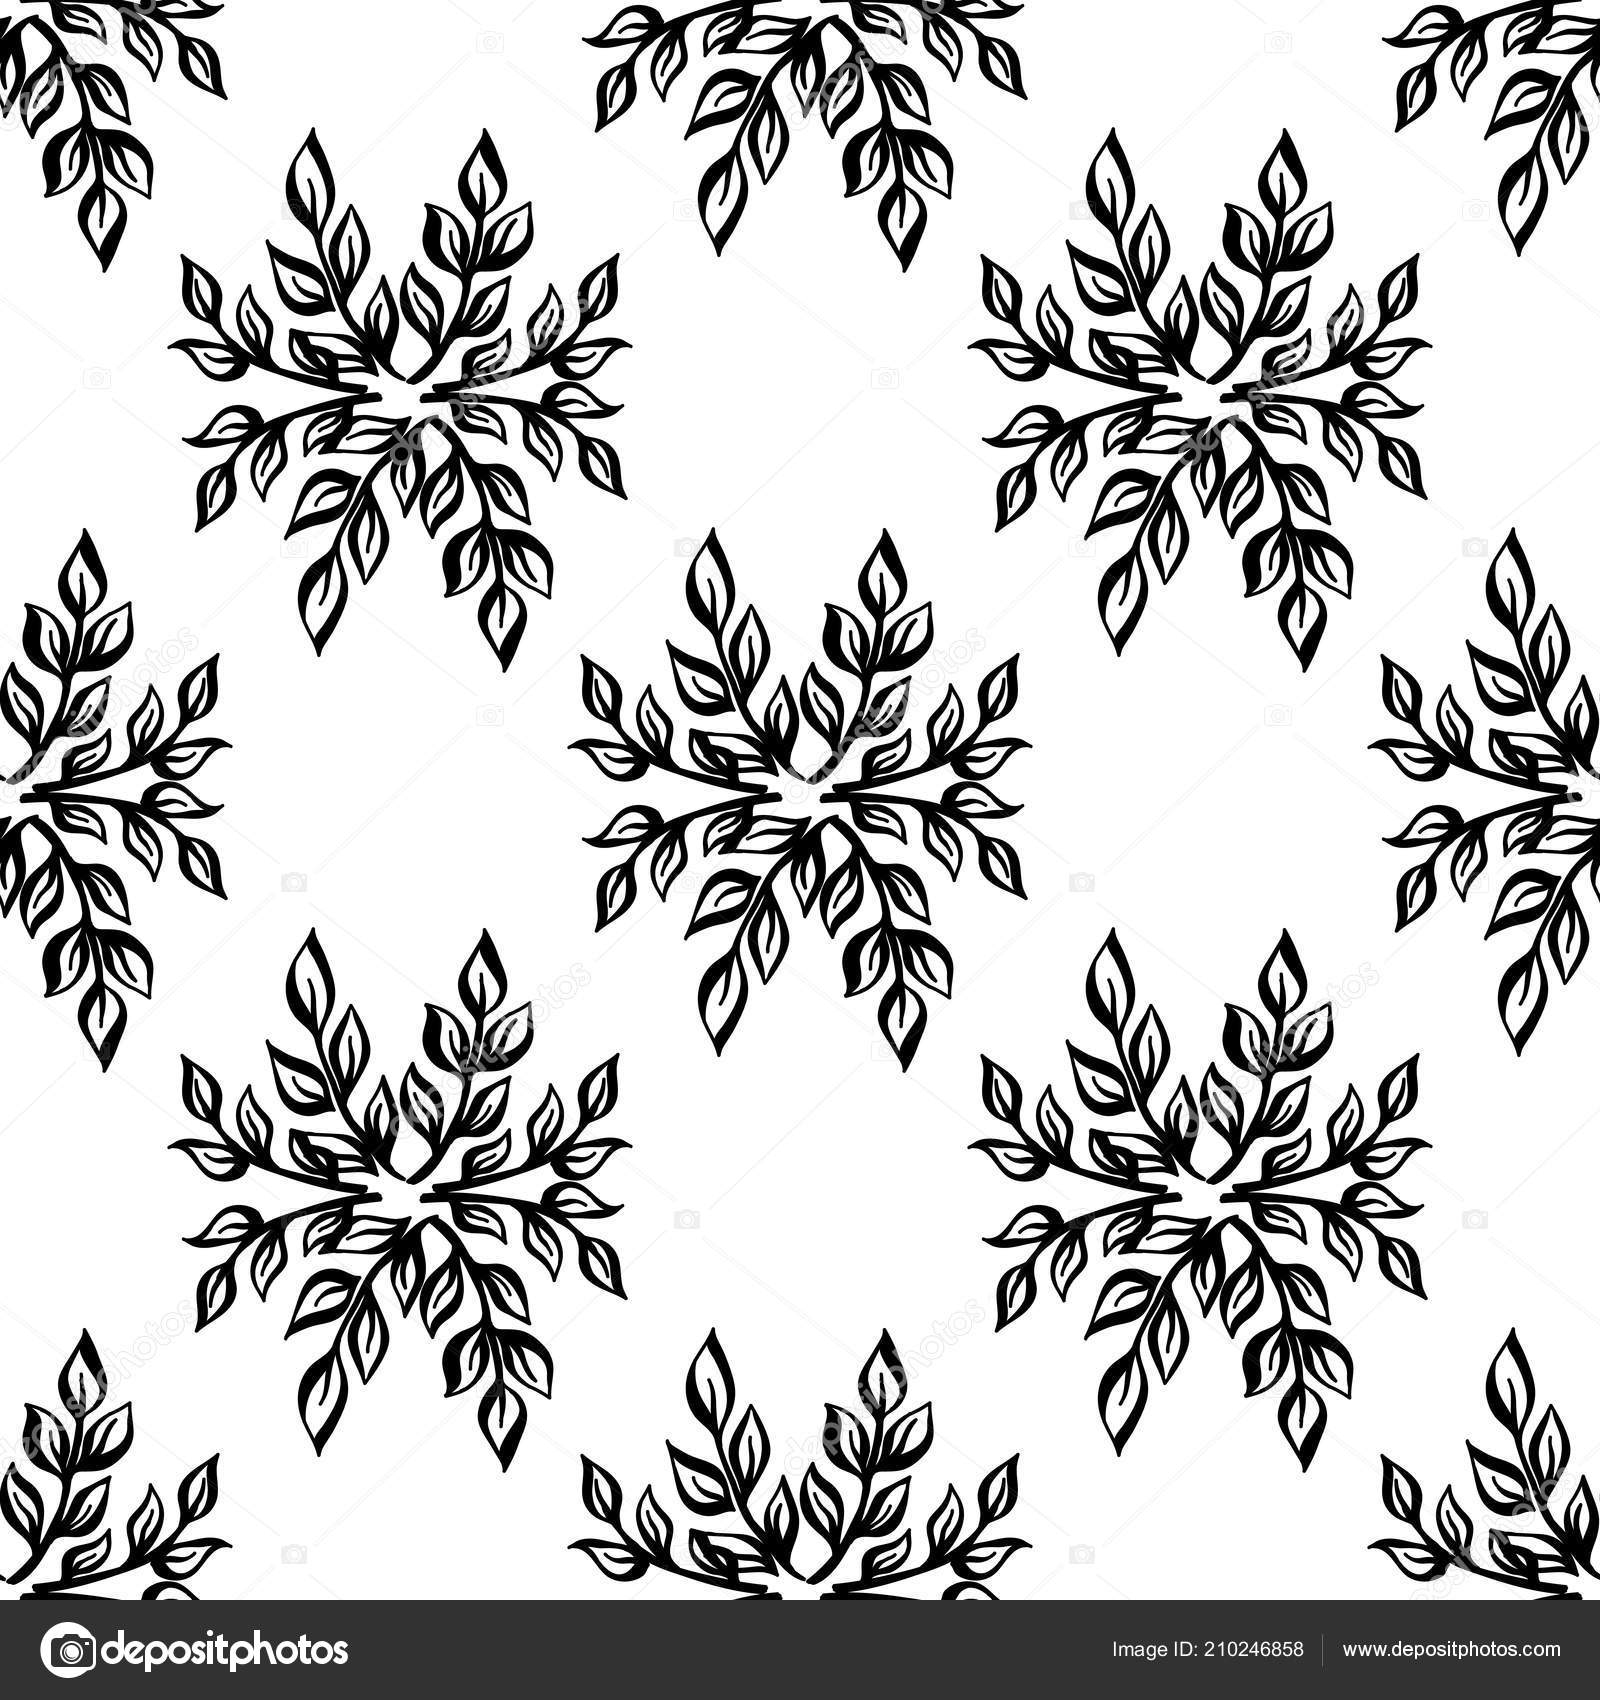 Black and white floral elegant leaves seamless pattern vector illustration vector template for cards banners print fabric t shirt paper wallpaper